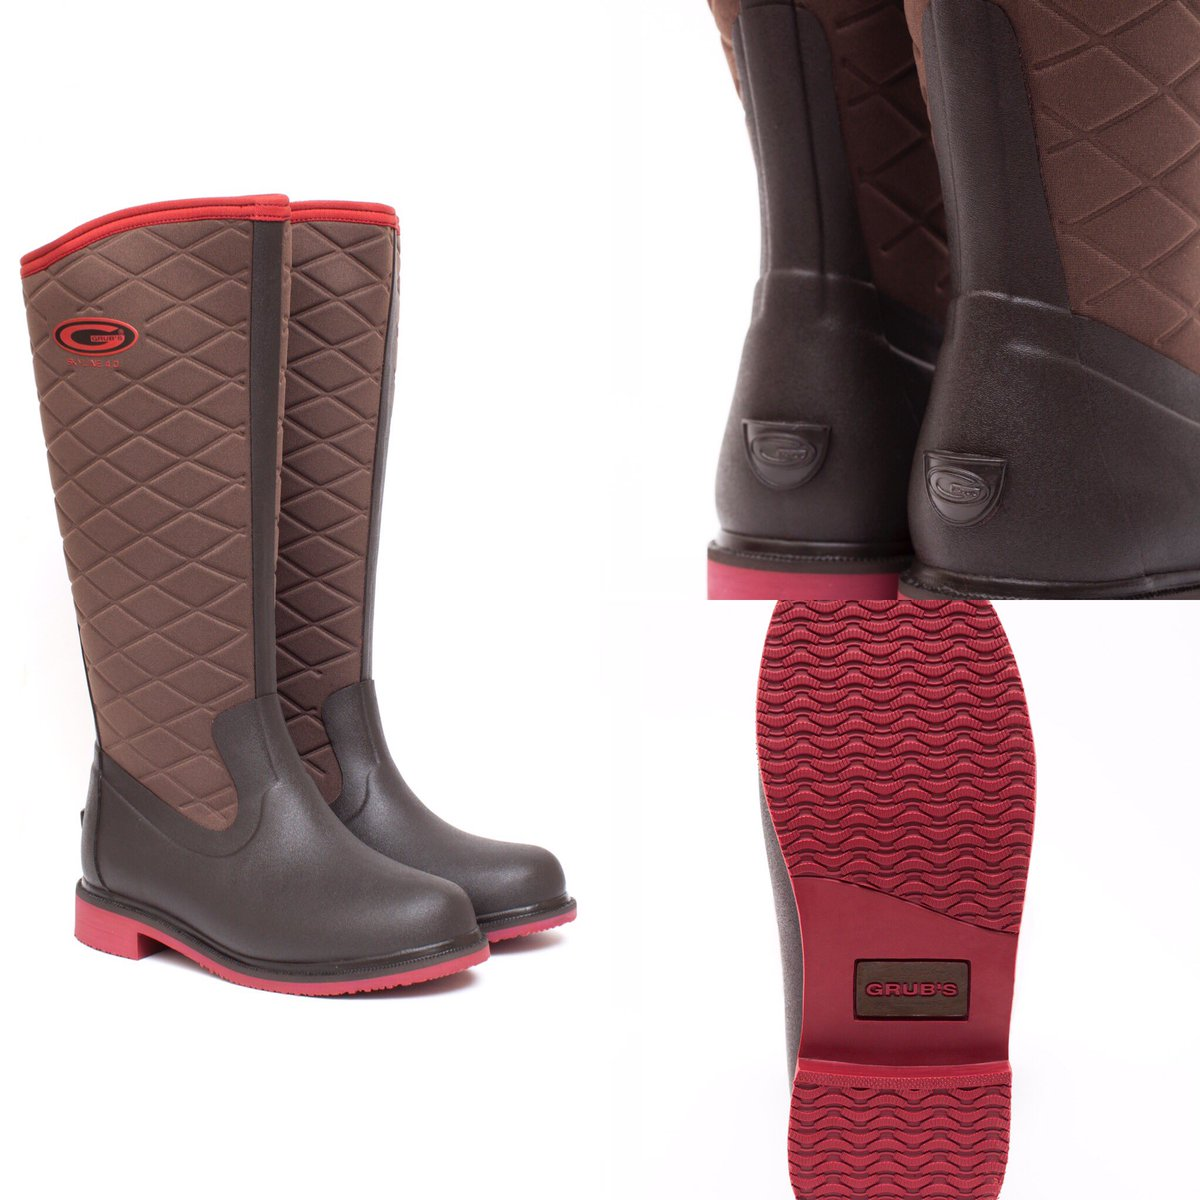 Our #Skyline a stylish equine boot! Shown in mahogany &amp; rosewood. Perfect for the yard &amp; in the stirrup! #comfort #grip #warm #waterproof <br>http://pic.twitter.com/XgKOio2liP